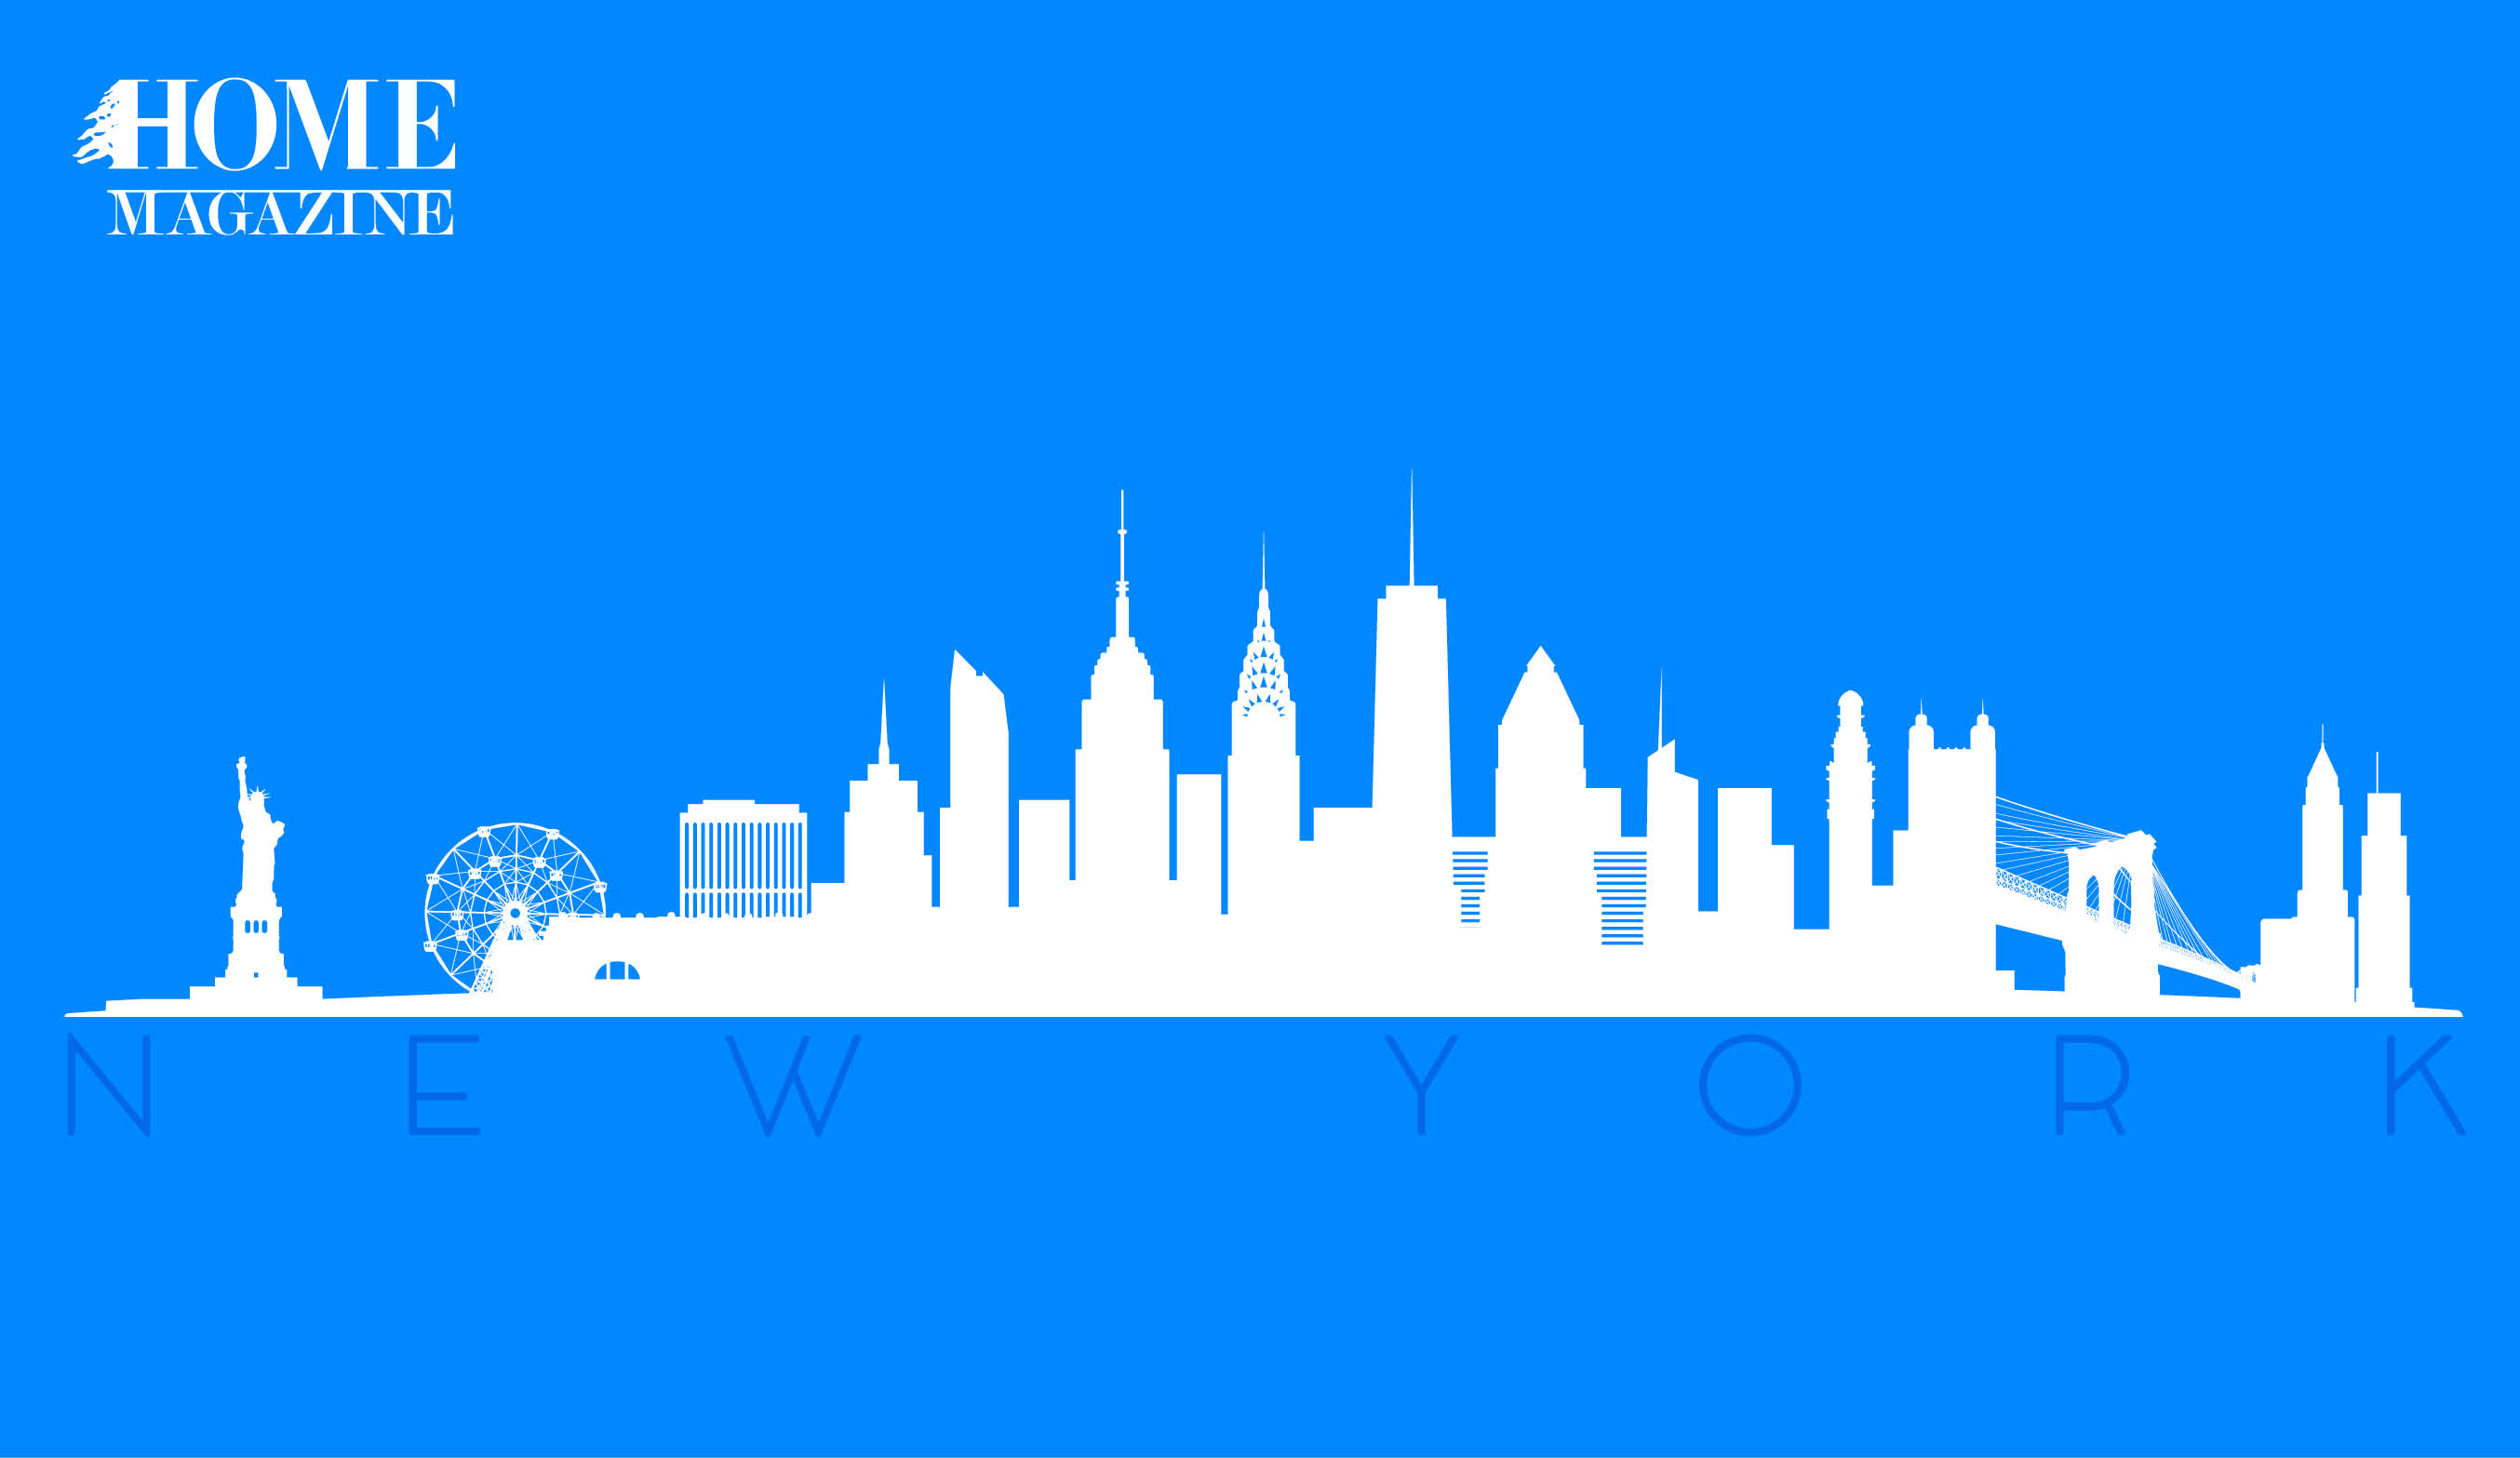 Drawing of New York white buildings on blue background